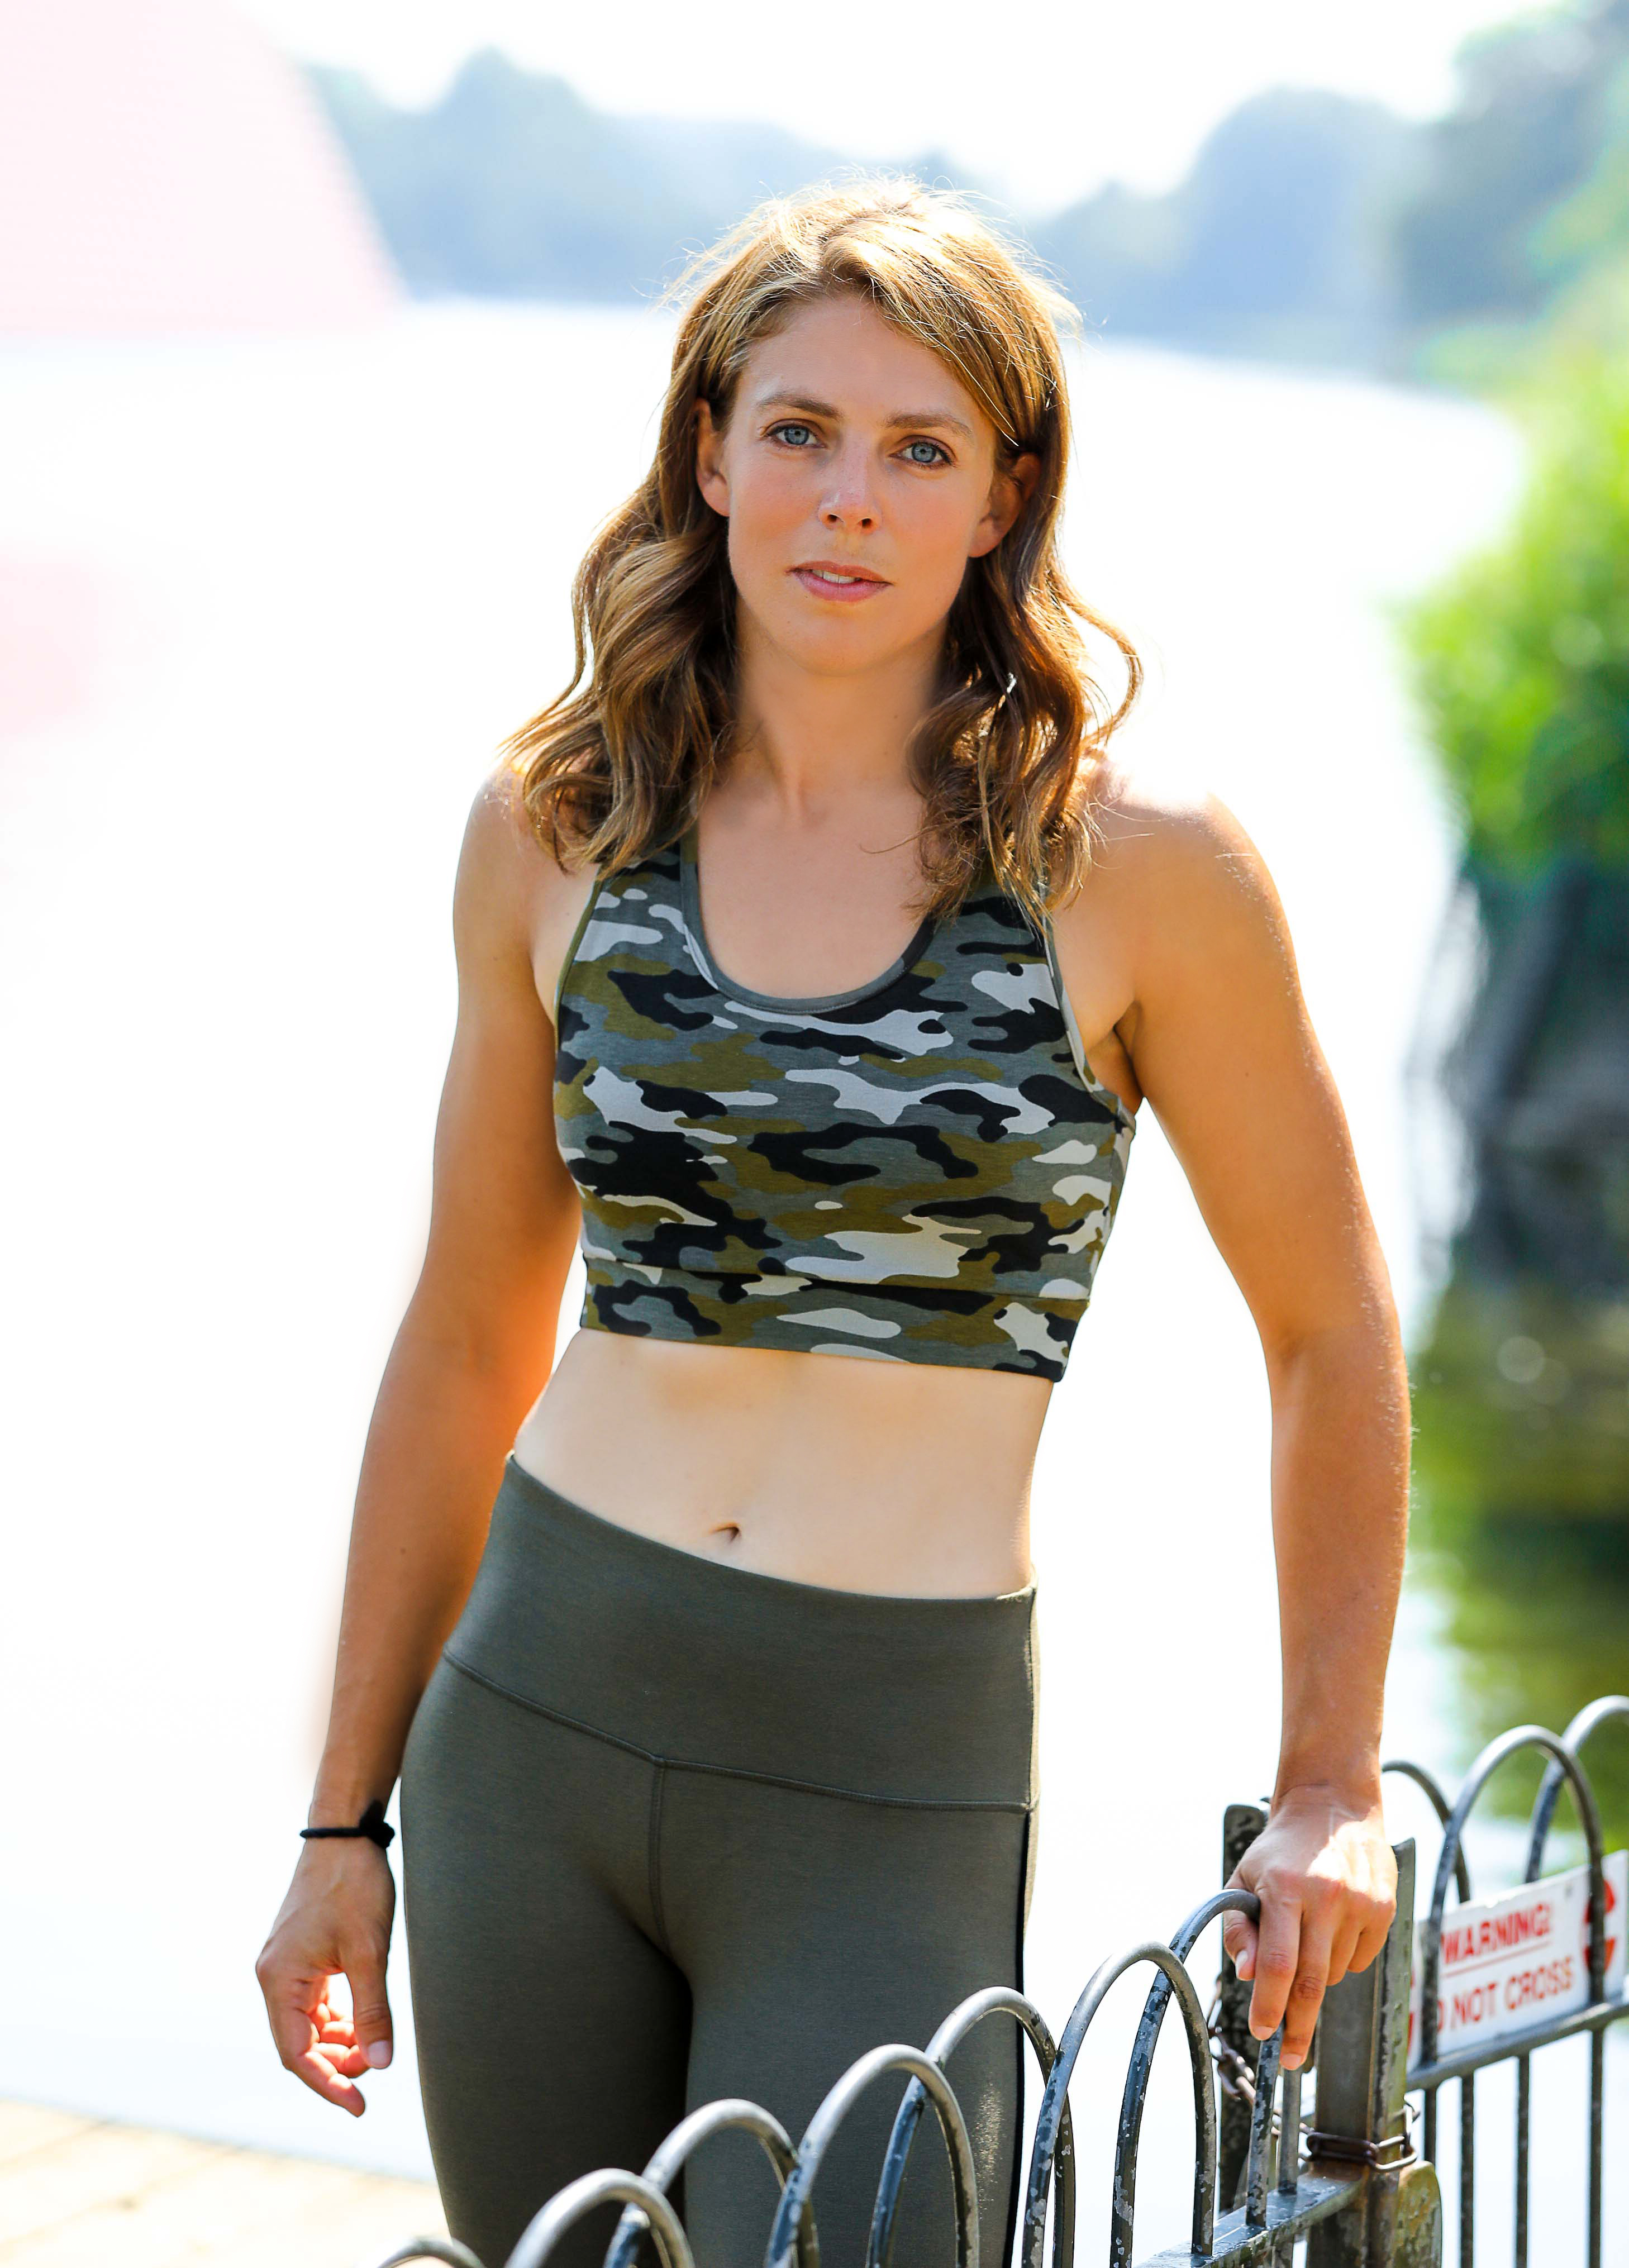 Megan Hine wearing Asquith camouflage yoga clothes in Hyde Park.